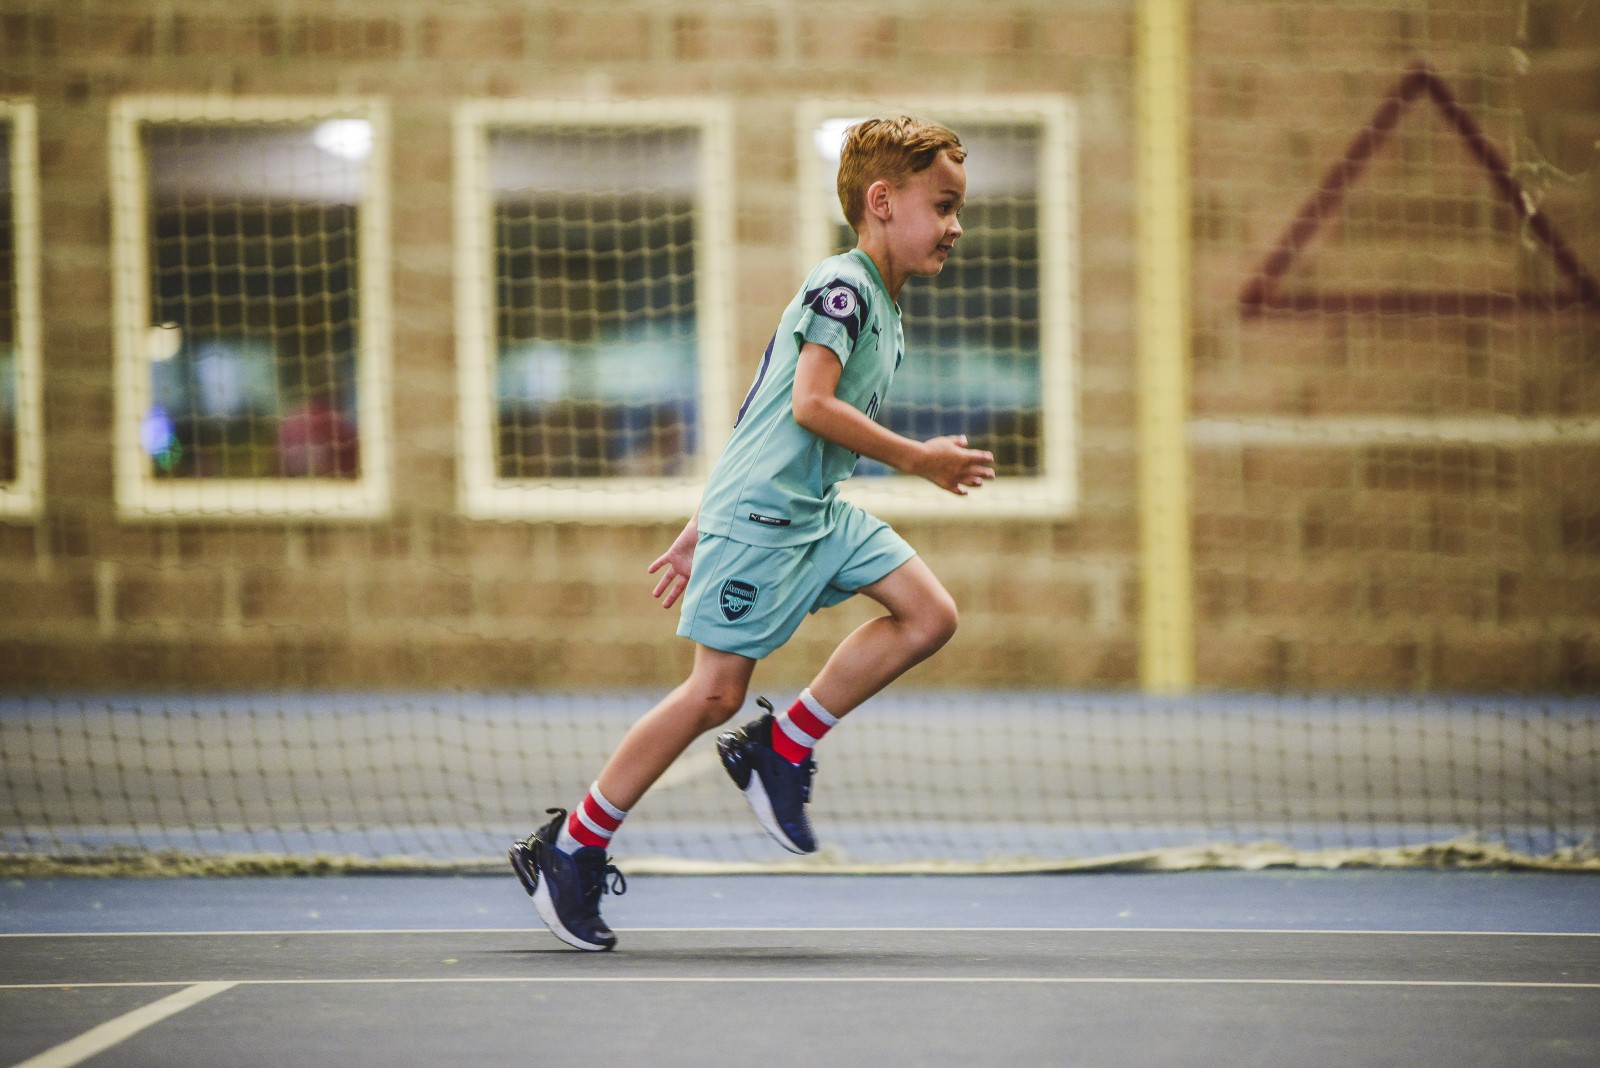 boy in a football kit running in a sports hall.jpg